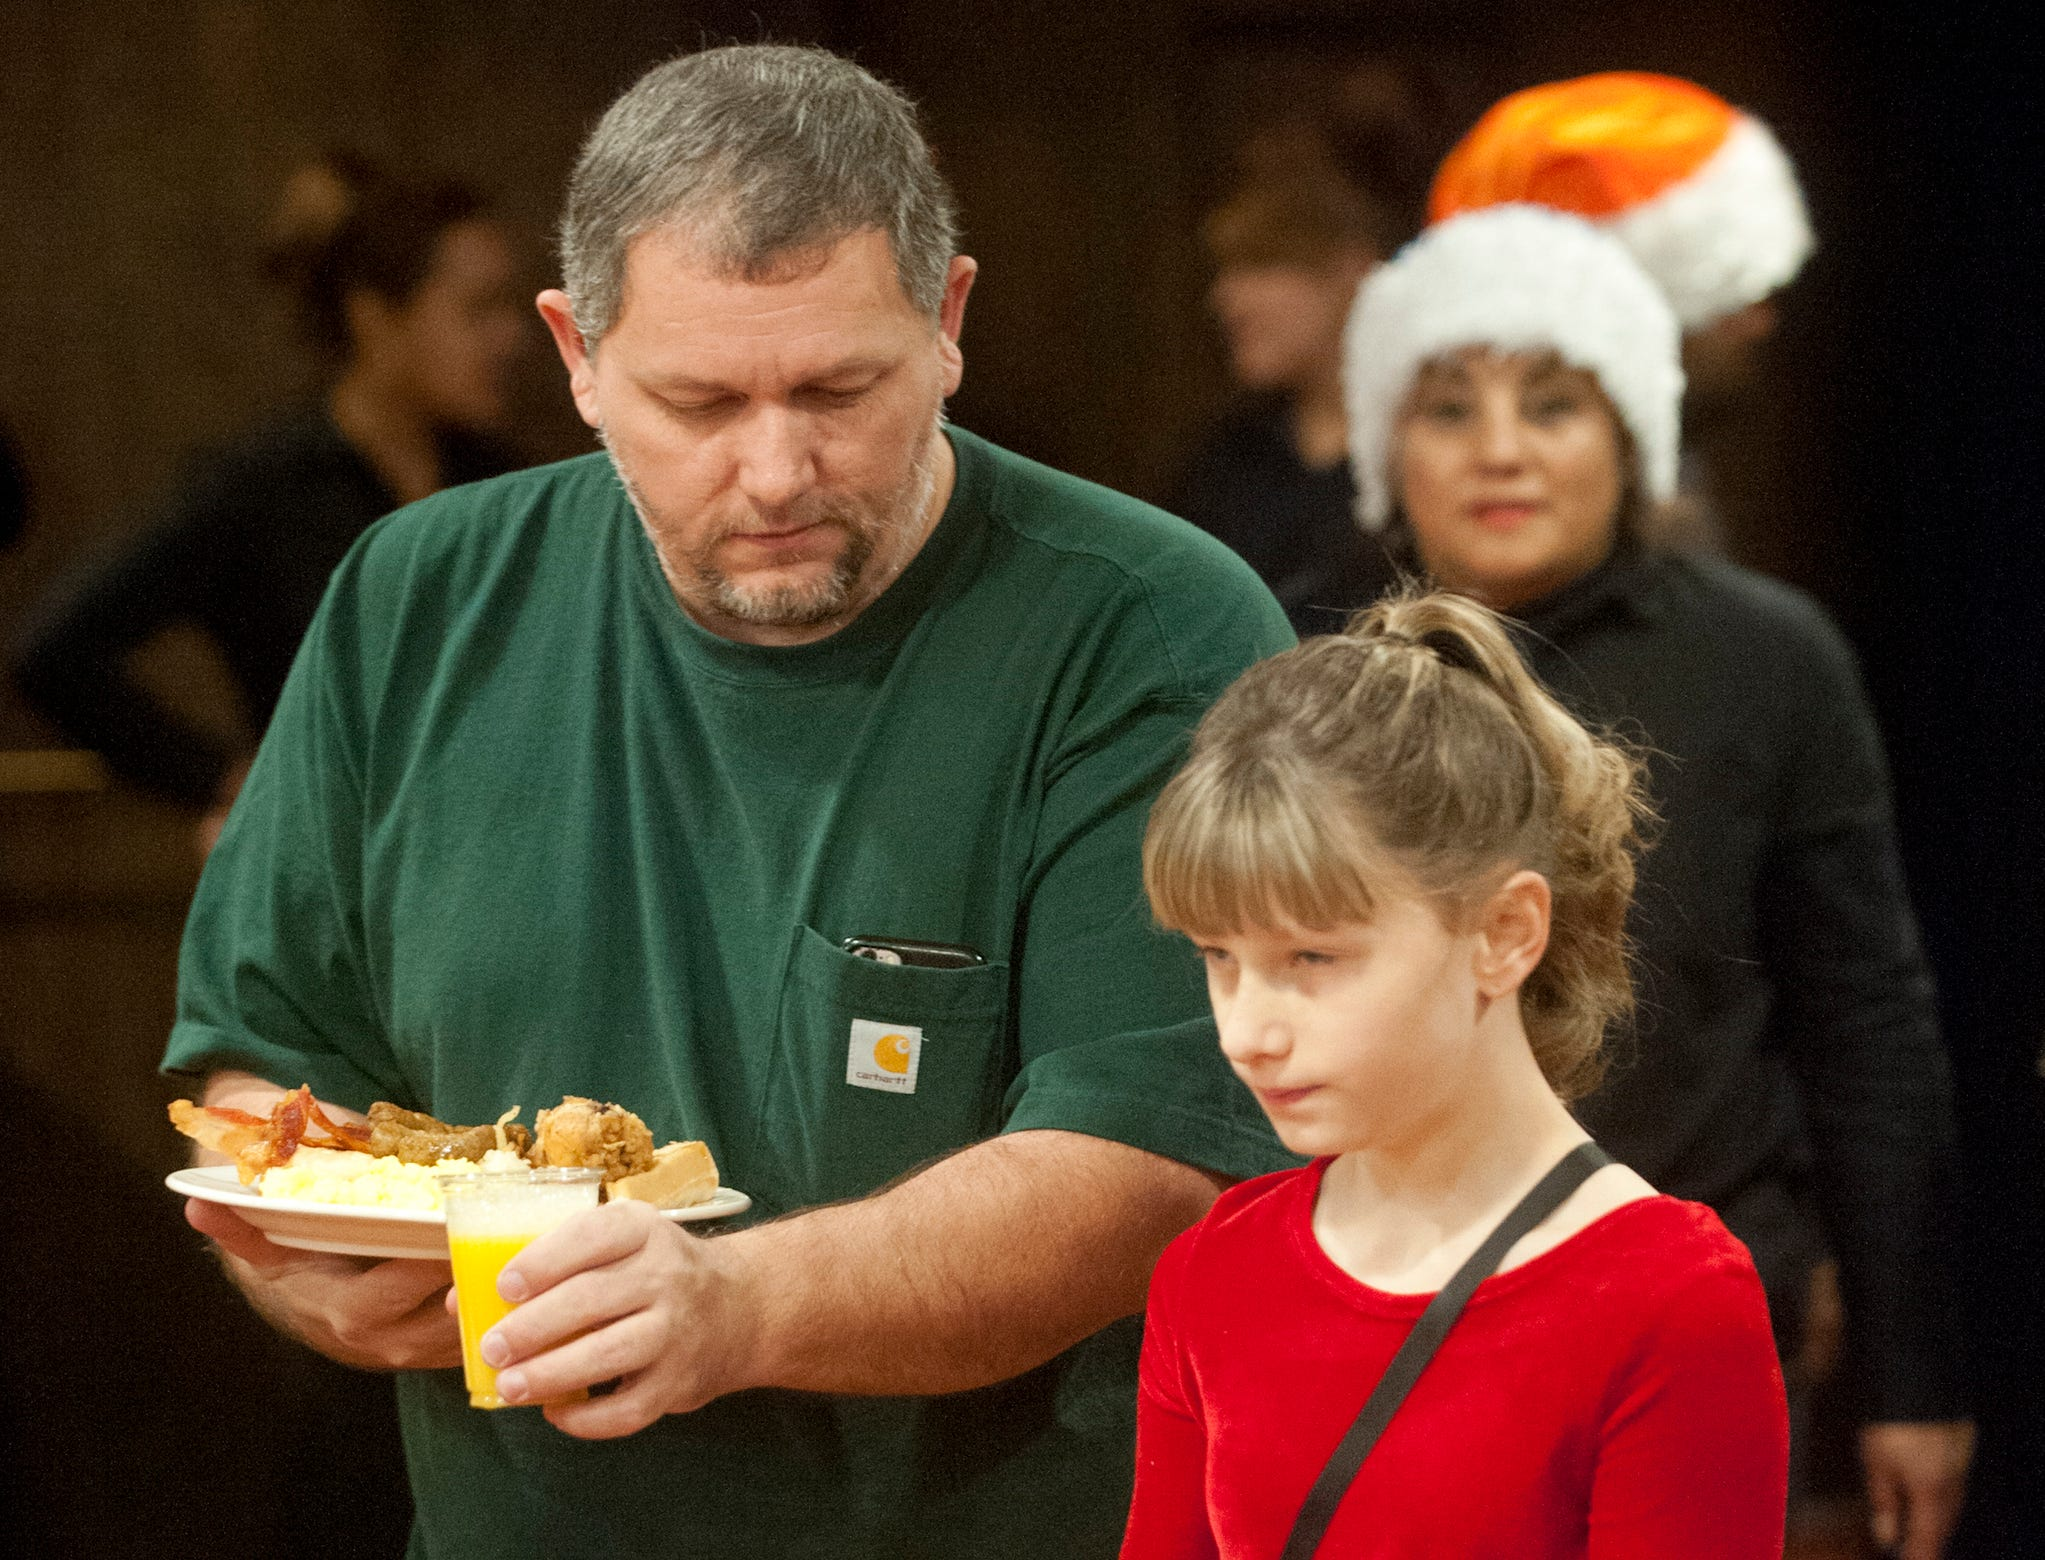 """Rocky Blair of Hodgenville, Ky., and his daughter, Lilly, take their plates of food to the table at the Galt House Hotel's   """"Breakfast with Santa"""" event.22 December 2018"""